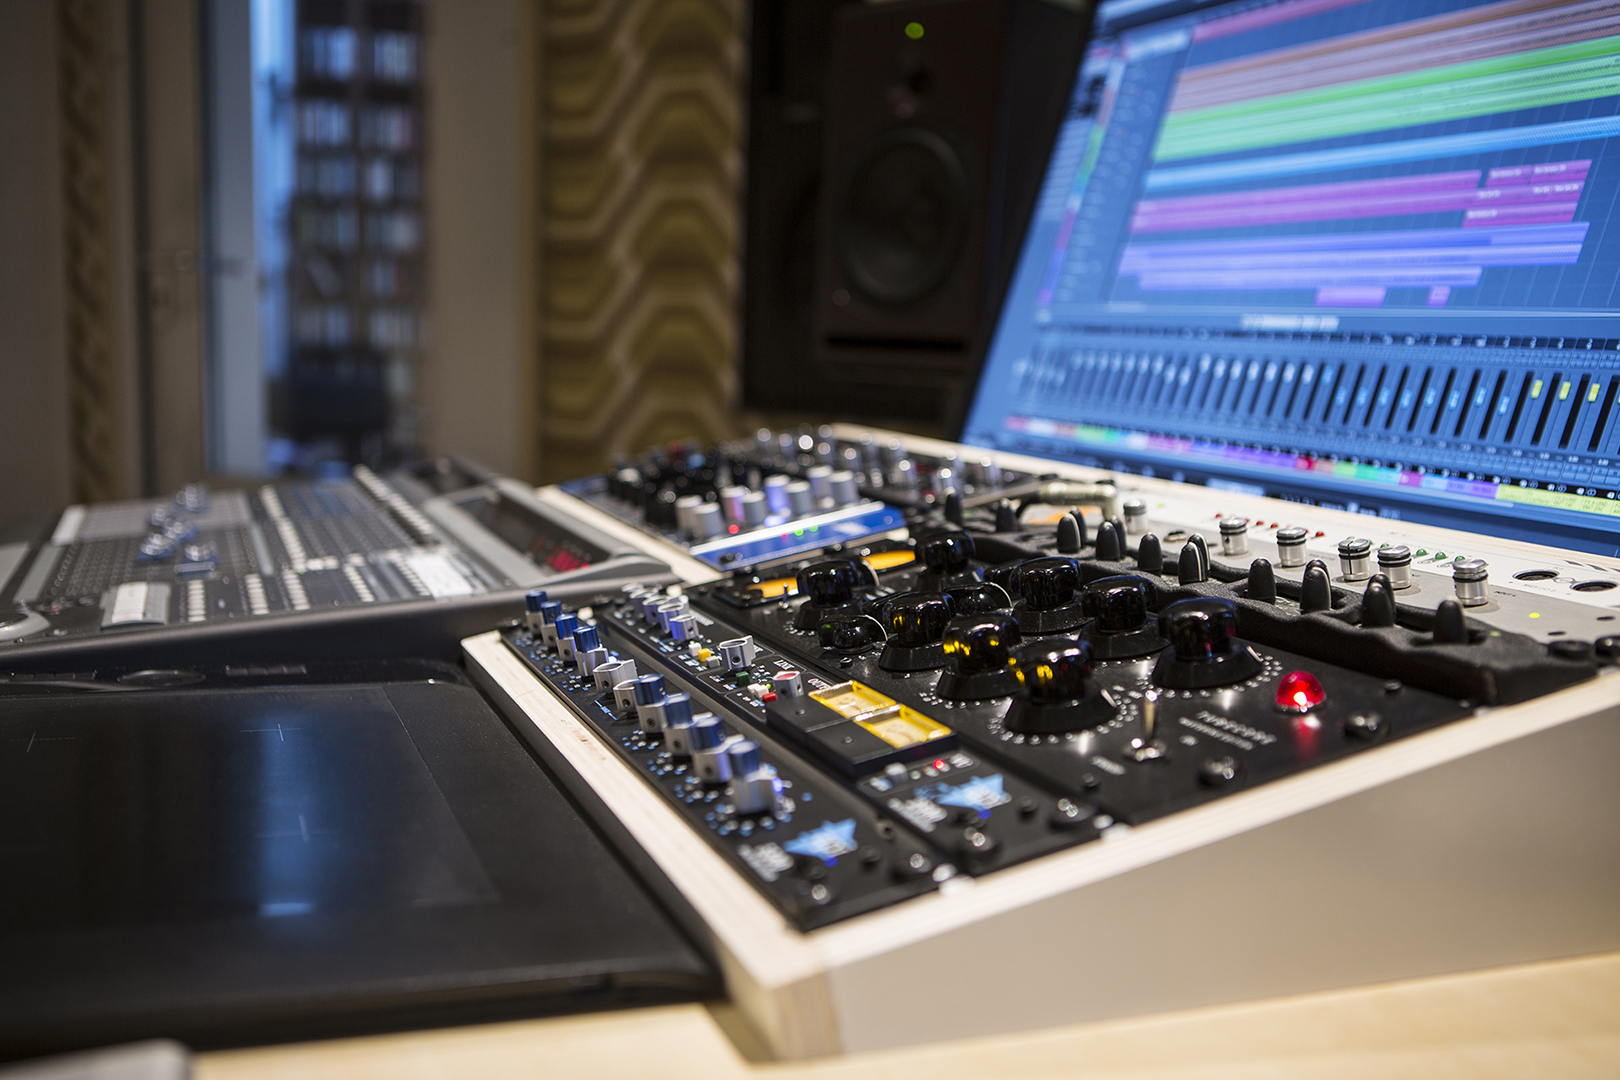 Some of our analog gear at Studio peggy51